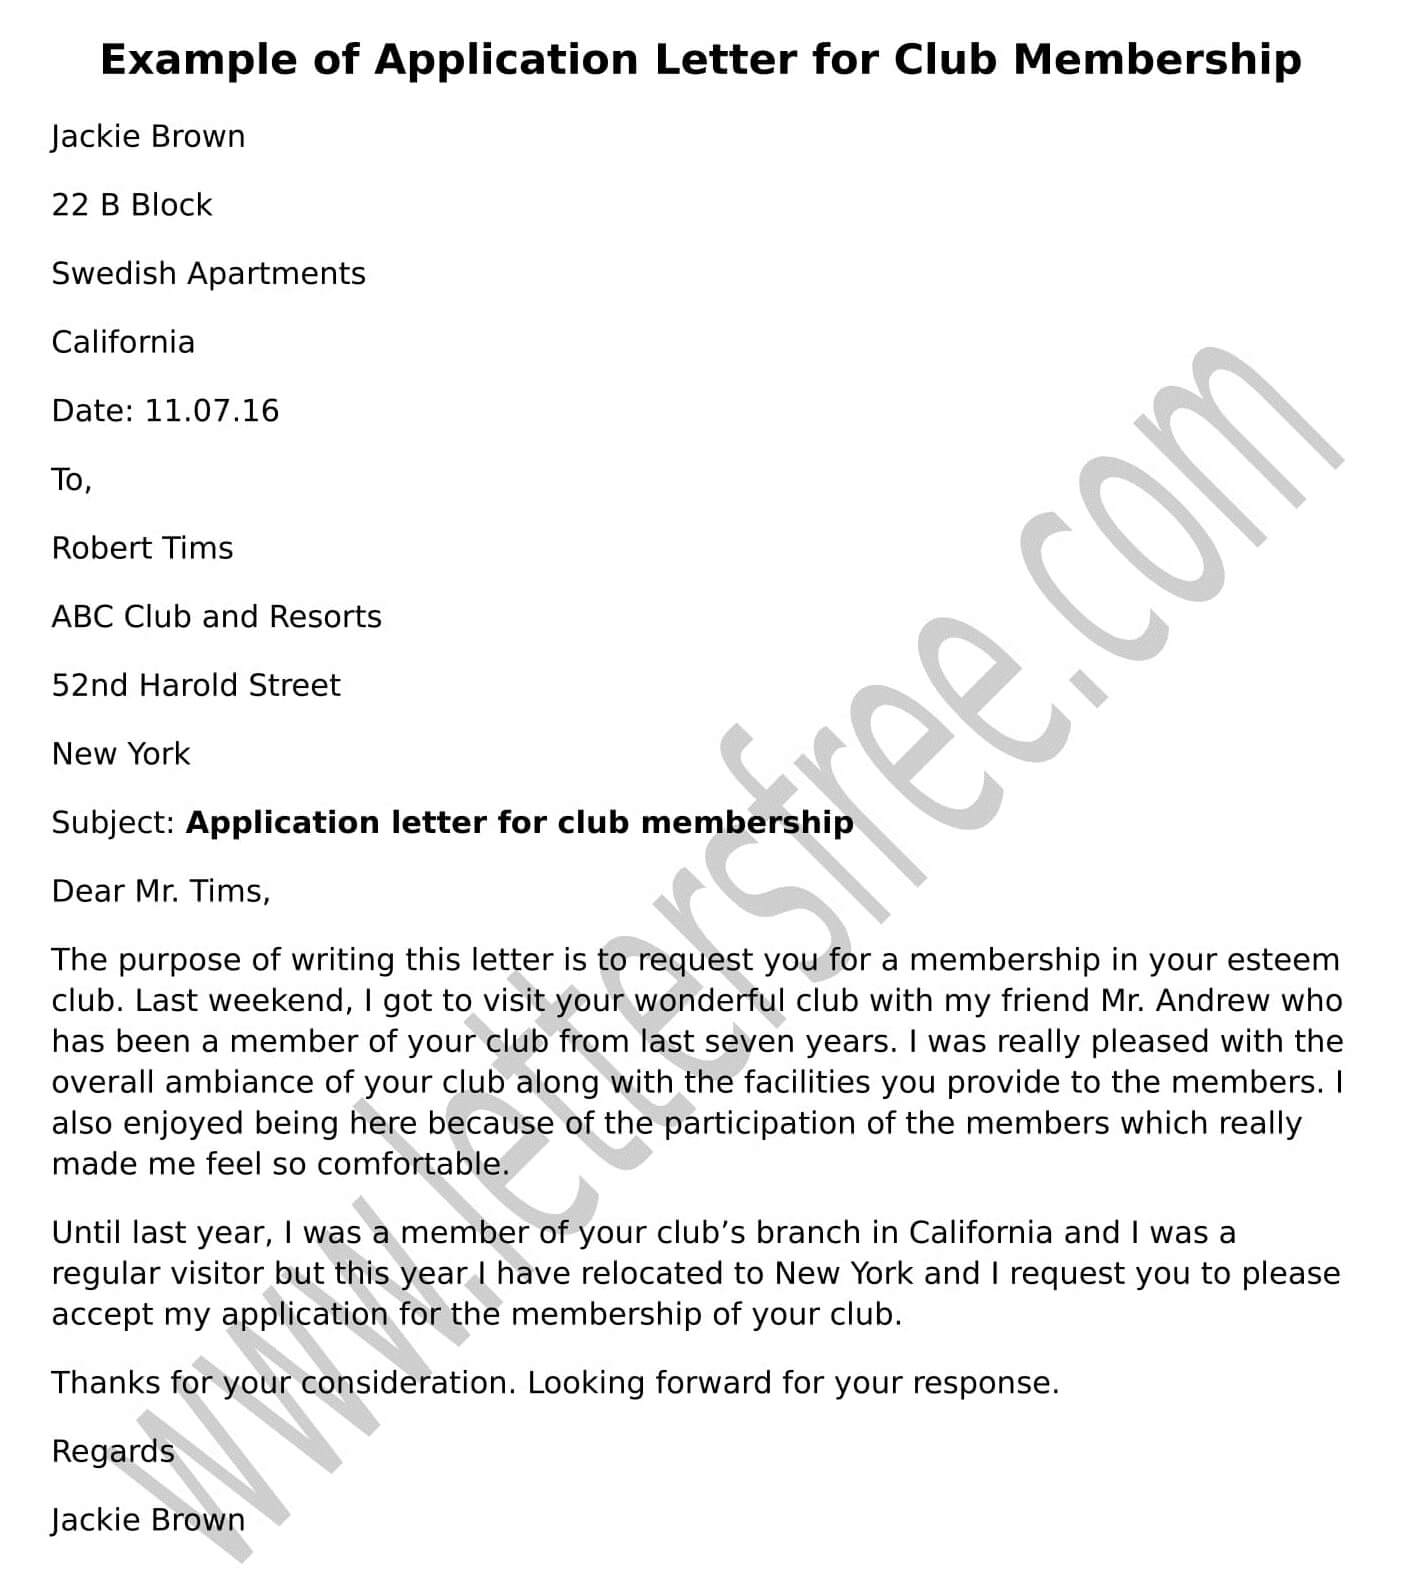 Sample Club Membership Application Letter example format